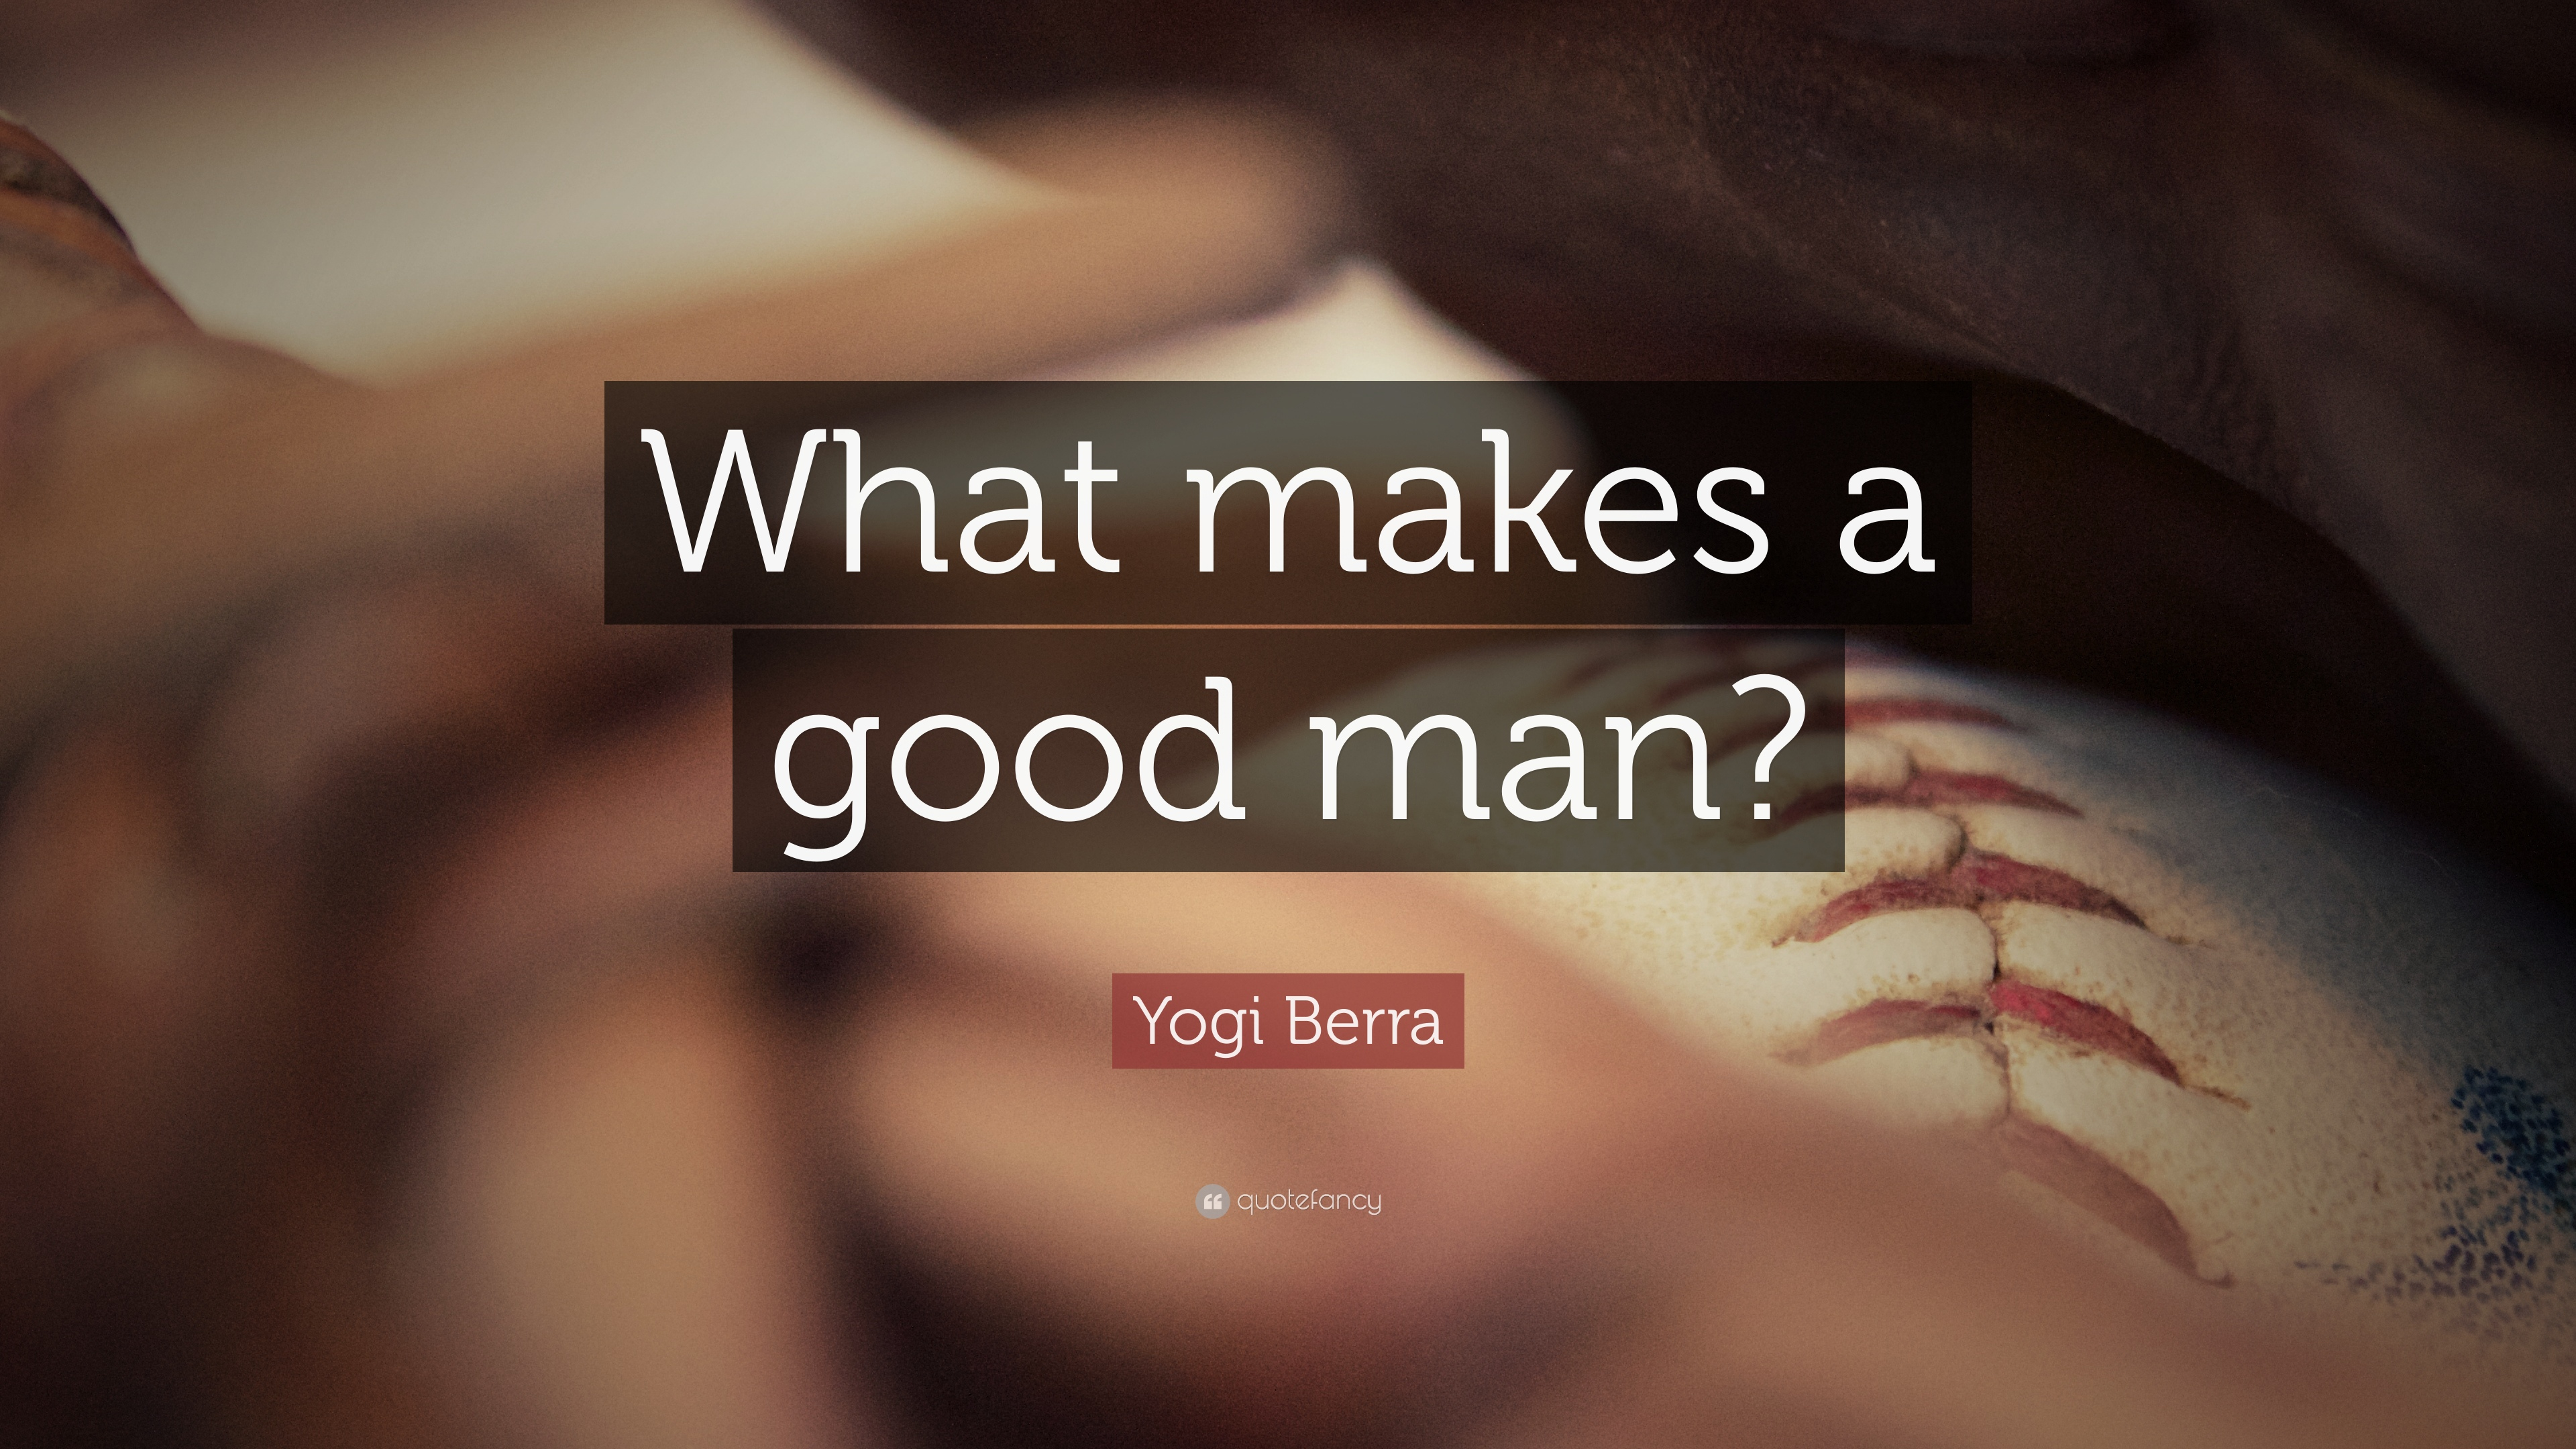 Quotes a good what makes man Take Life